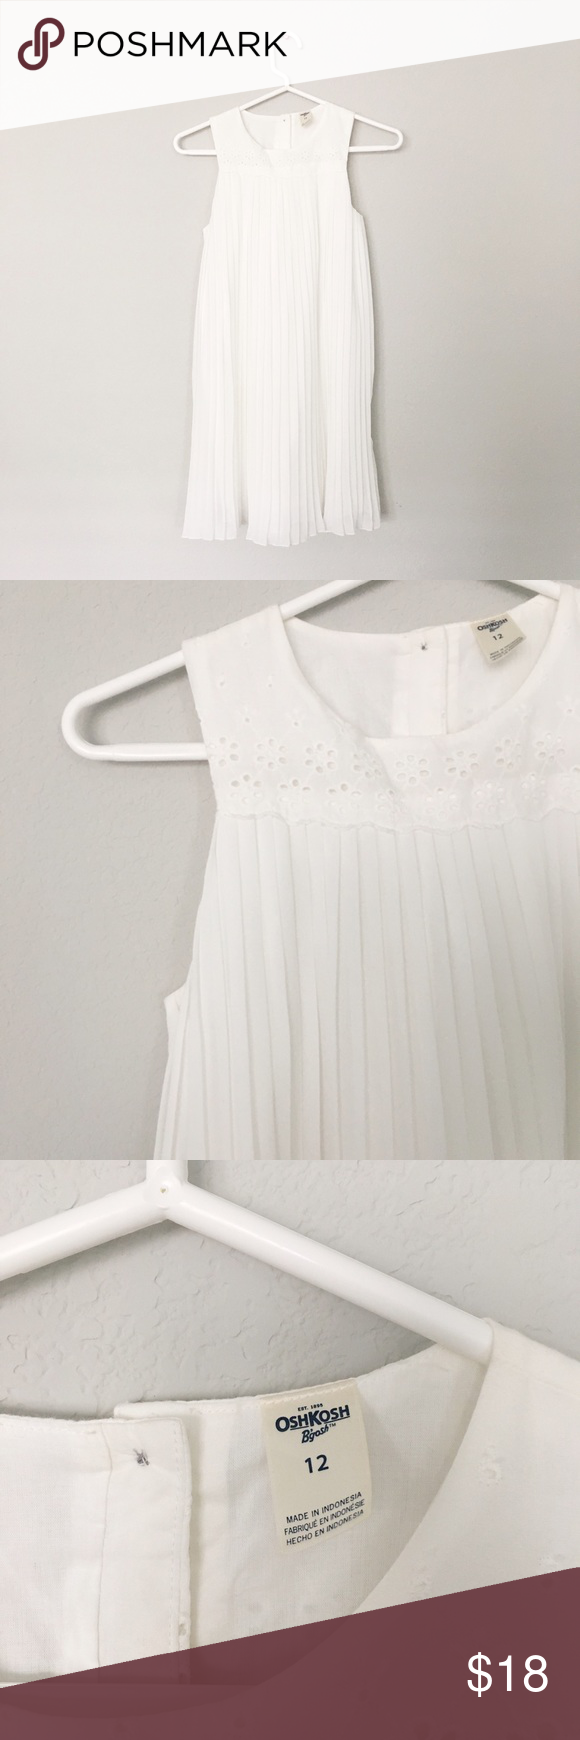 OshKosh White Swing Dress Title: Girls White Swing Dress   Condition: Pre-owned but in excellent condition  Color: White Type: Yoke: 100% Cotton. Skirt: 100% Polyester  Size: Girls 12  Brand: OshKosh Osh Kosh Dresses Casual